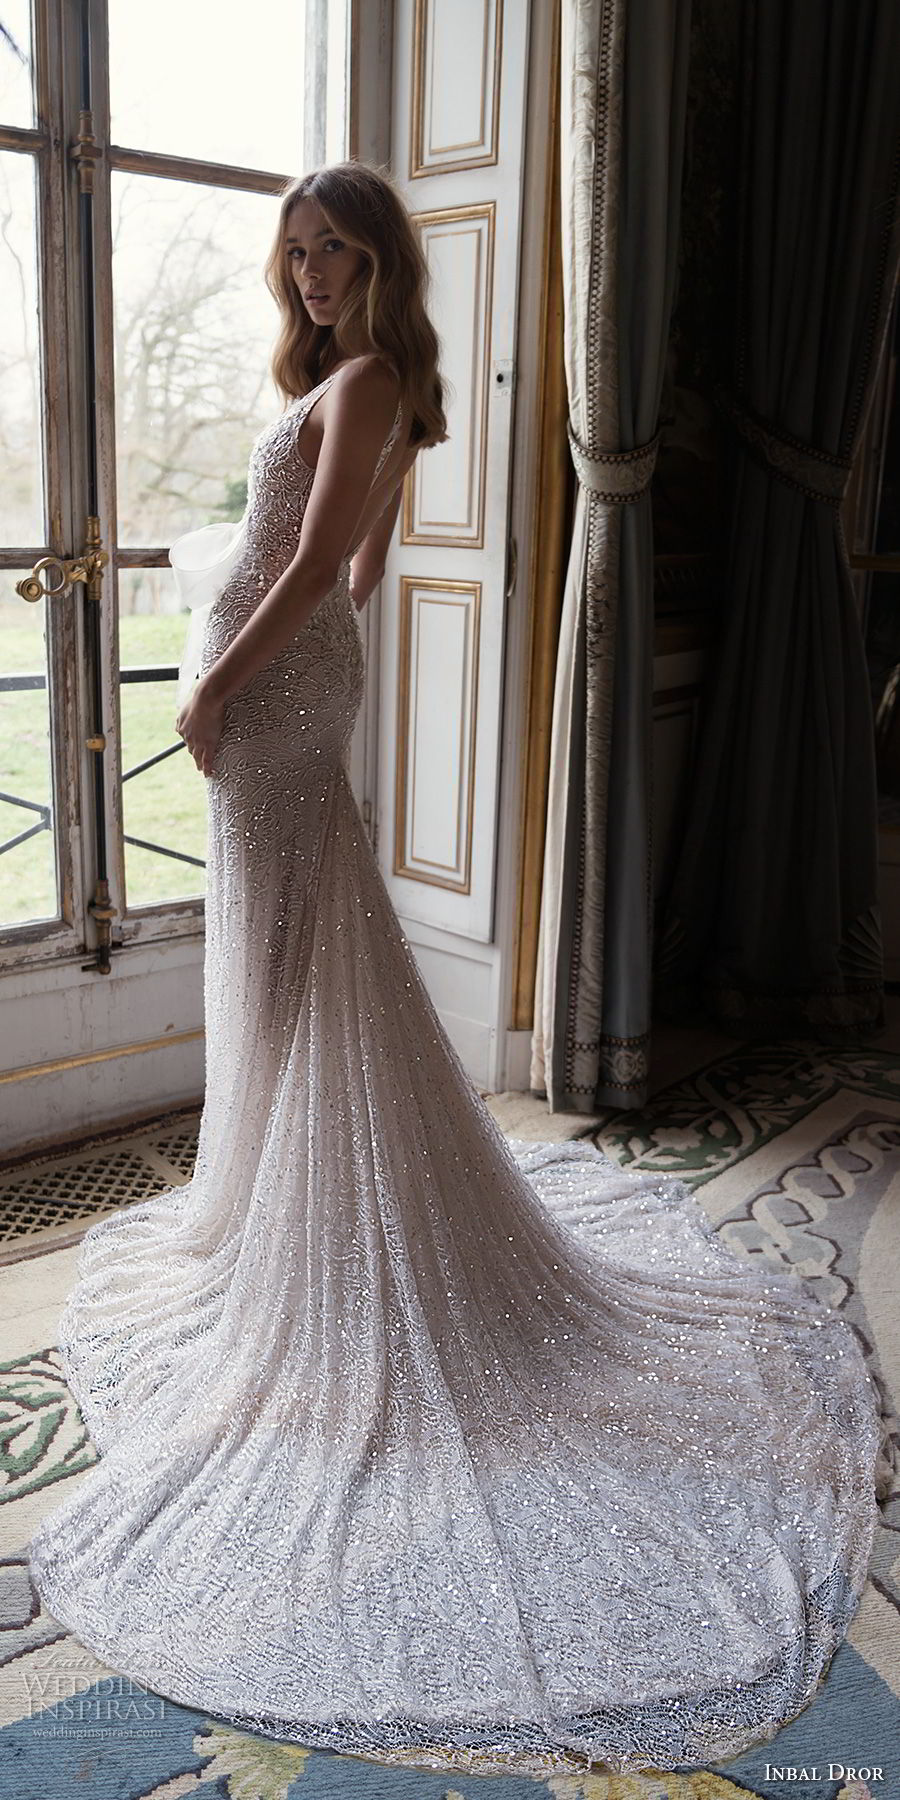 inba dror fall 2018 bridal sleeveless deep v neck full embellishment ribbon front romantic sexy fit and flare wedding dress open back chapel train (1) bv